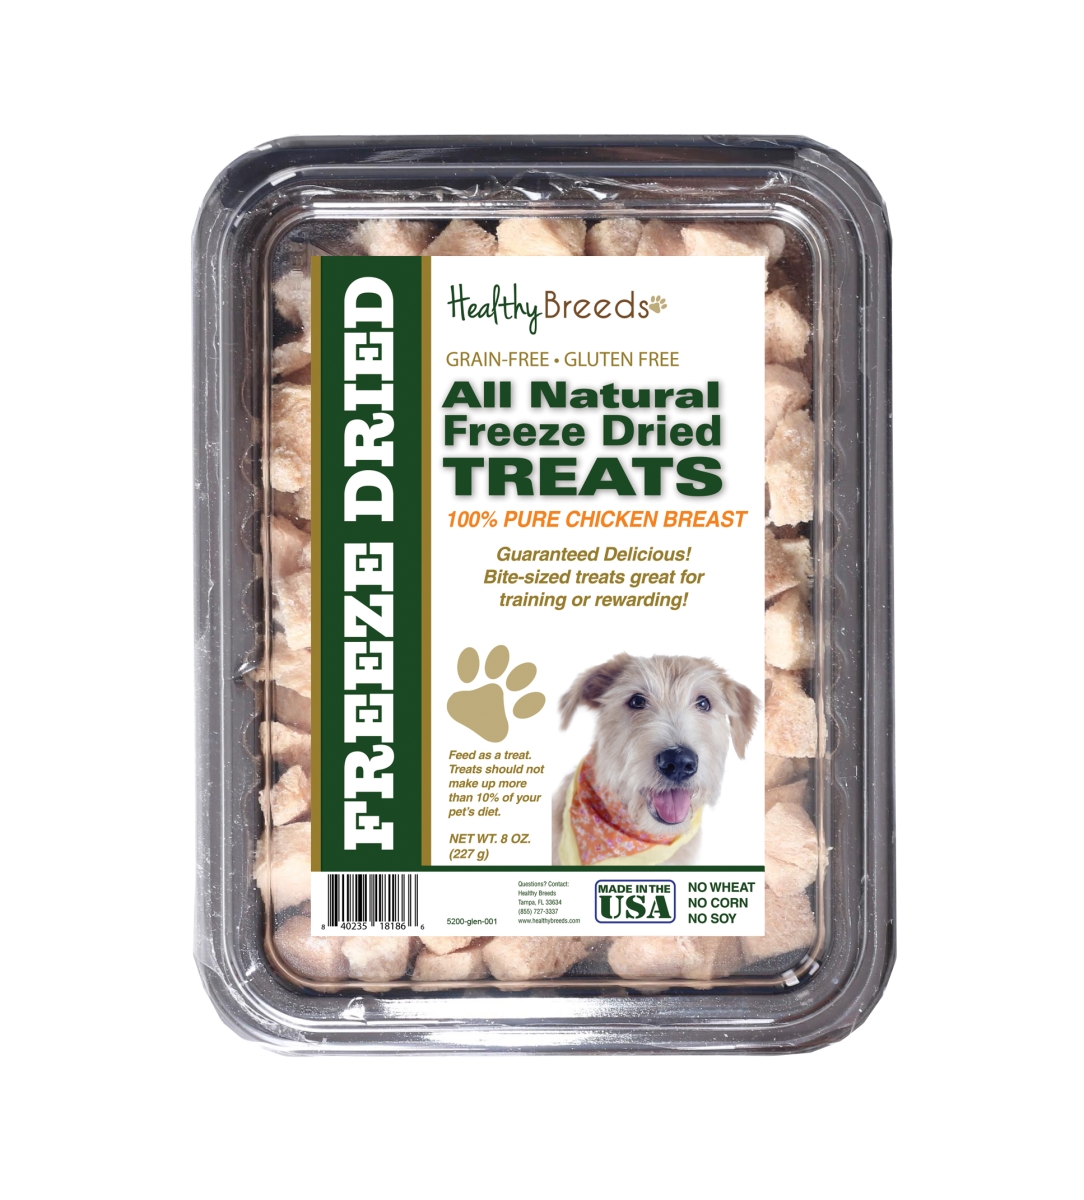 Healthy Breeds 840235181866 8 oz Glen of Imaal Terrier All Natural Freeze Dried Treats Chicken Breast